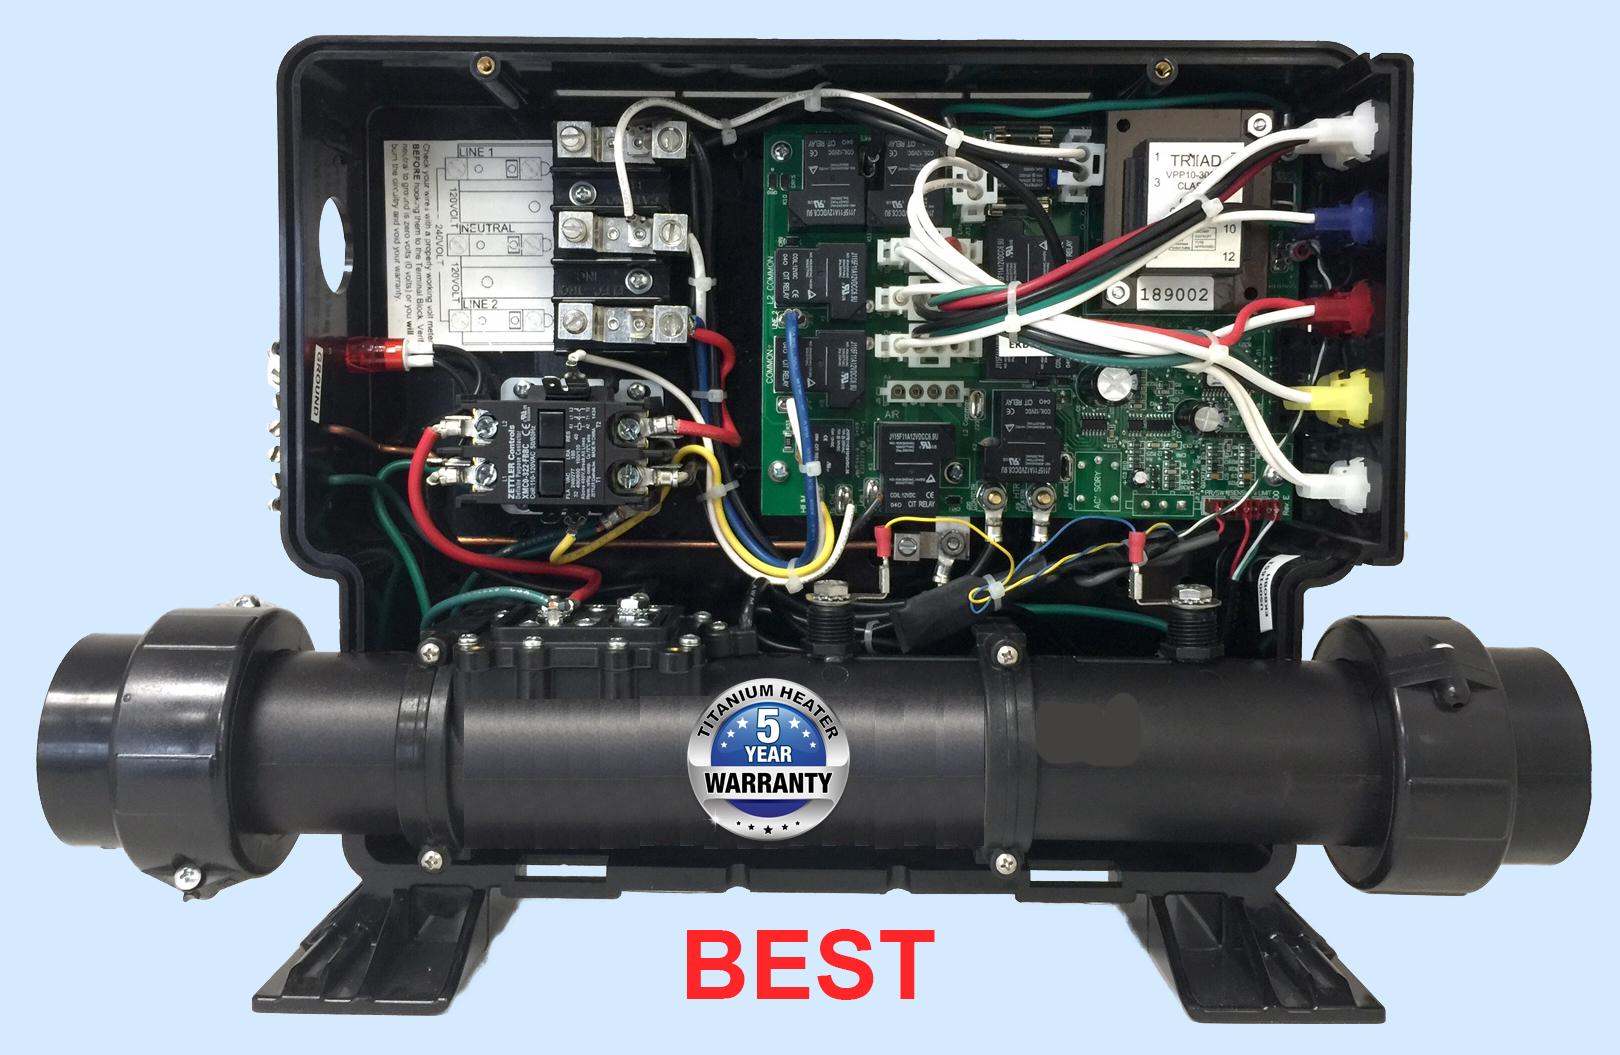 USC_CosmoHeat_Warranty_Open_best replacement classact spas heater for $19 95 free freight mfg jacuzzi wiring diagram at panicattacktreatment.co